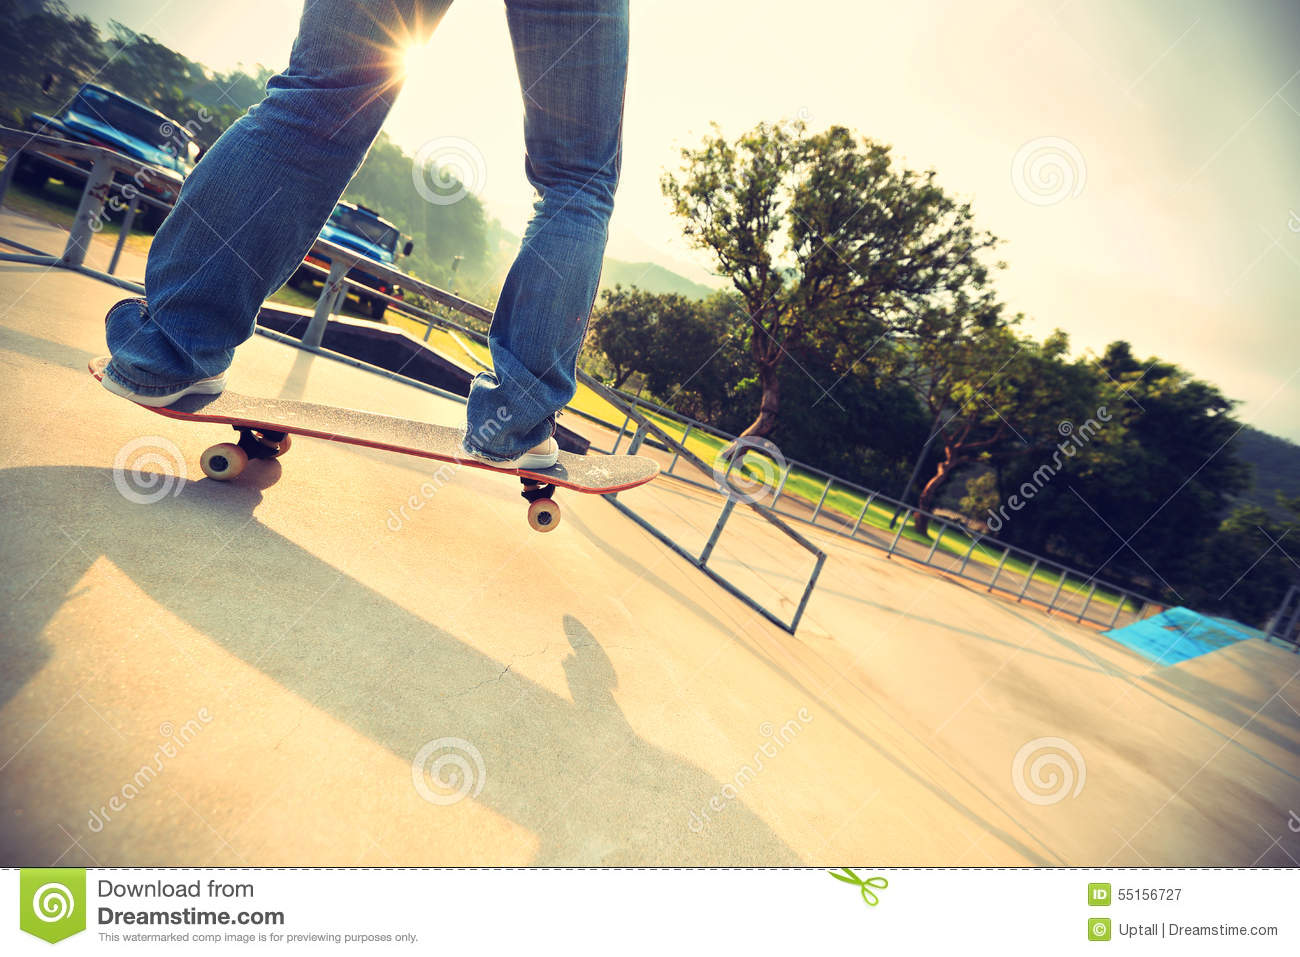 Skateboarder Legs Skateboarding Stock Photo   Image  55156727